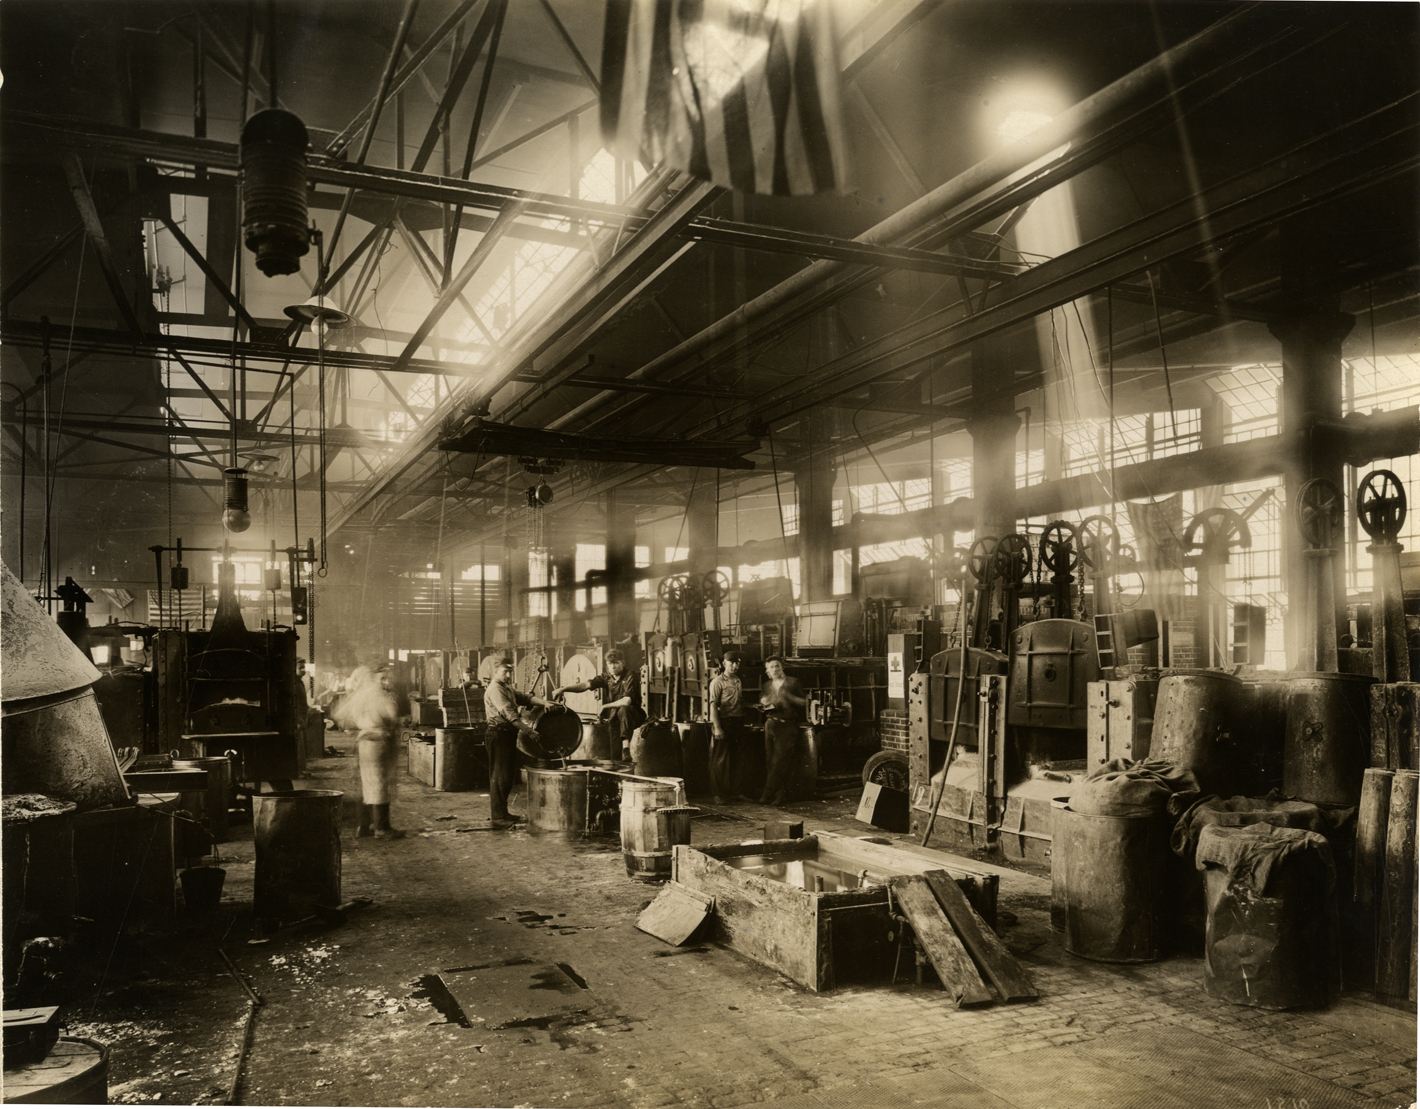 Workers with heat quenching tanks, Heat Treating Department, Chalmers Motor Company factory